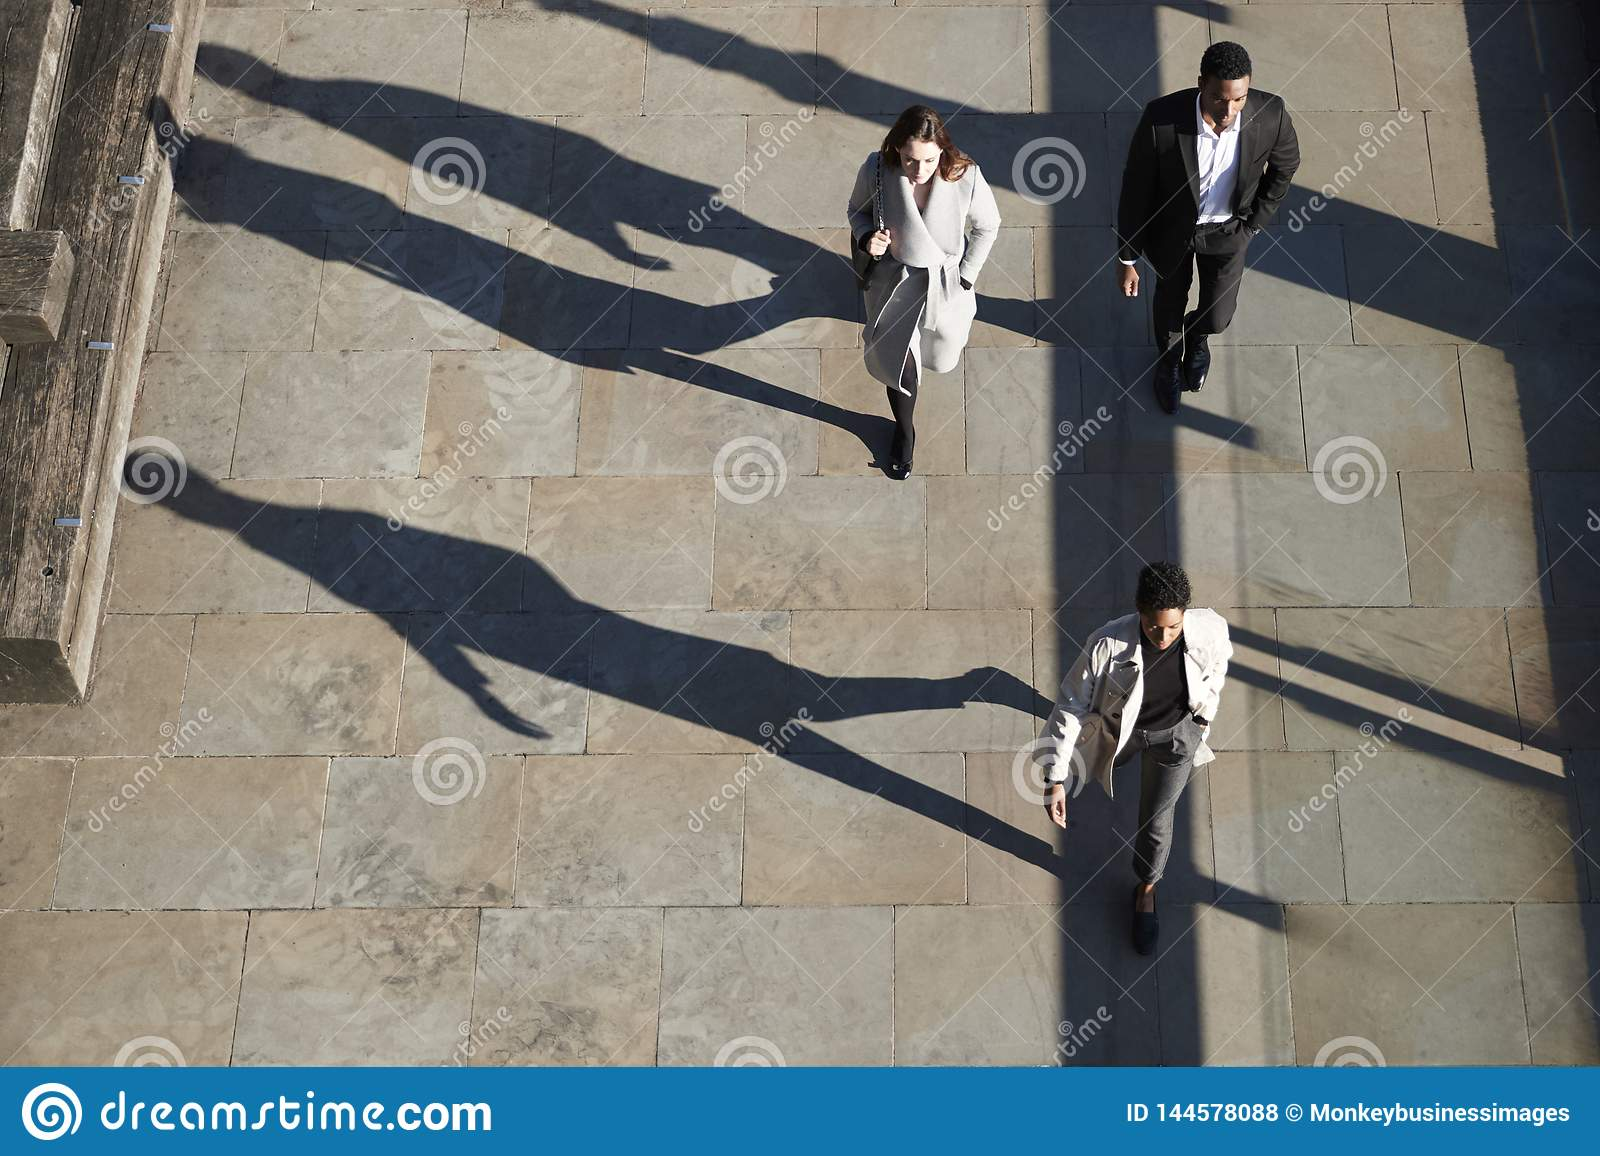 Aerial view of three city workers walking on a sunny urban street, horizontal